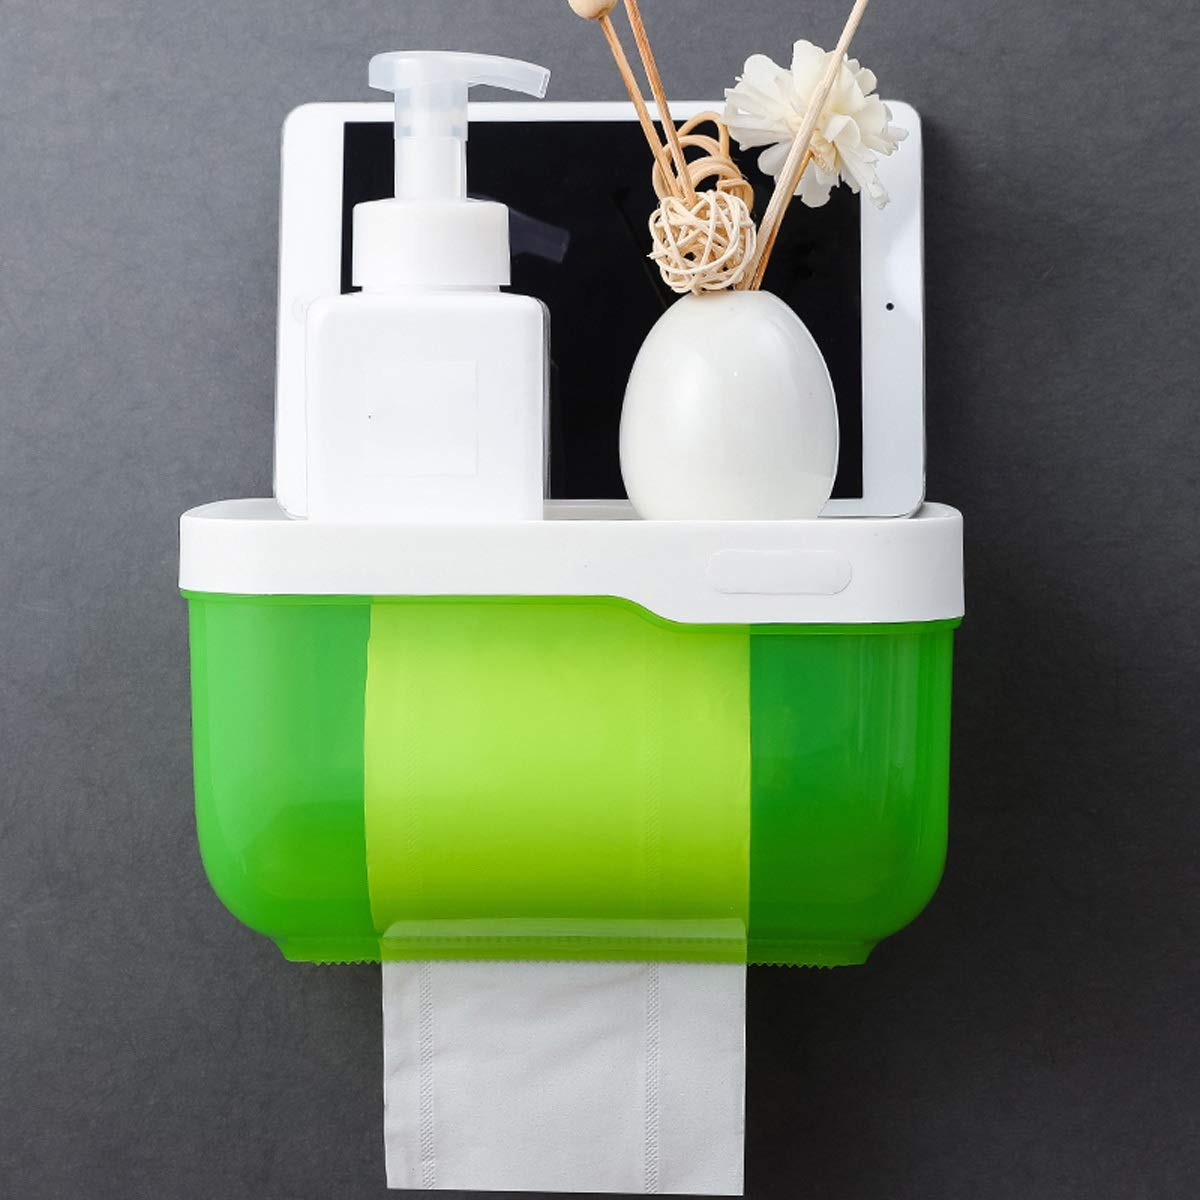 HAOMINGTIAN Tissue Box - Multi-Function Toilet Paper Holder Wall-Mounted Punch-Free Tissue Box with Storage Rack for Mobile Phone, Suitable for Bathroom or Kitchen Color : Green(M)